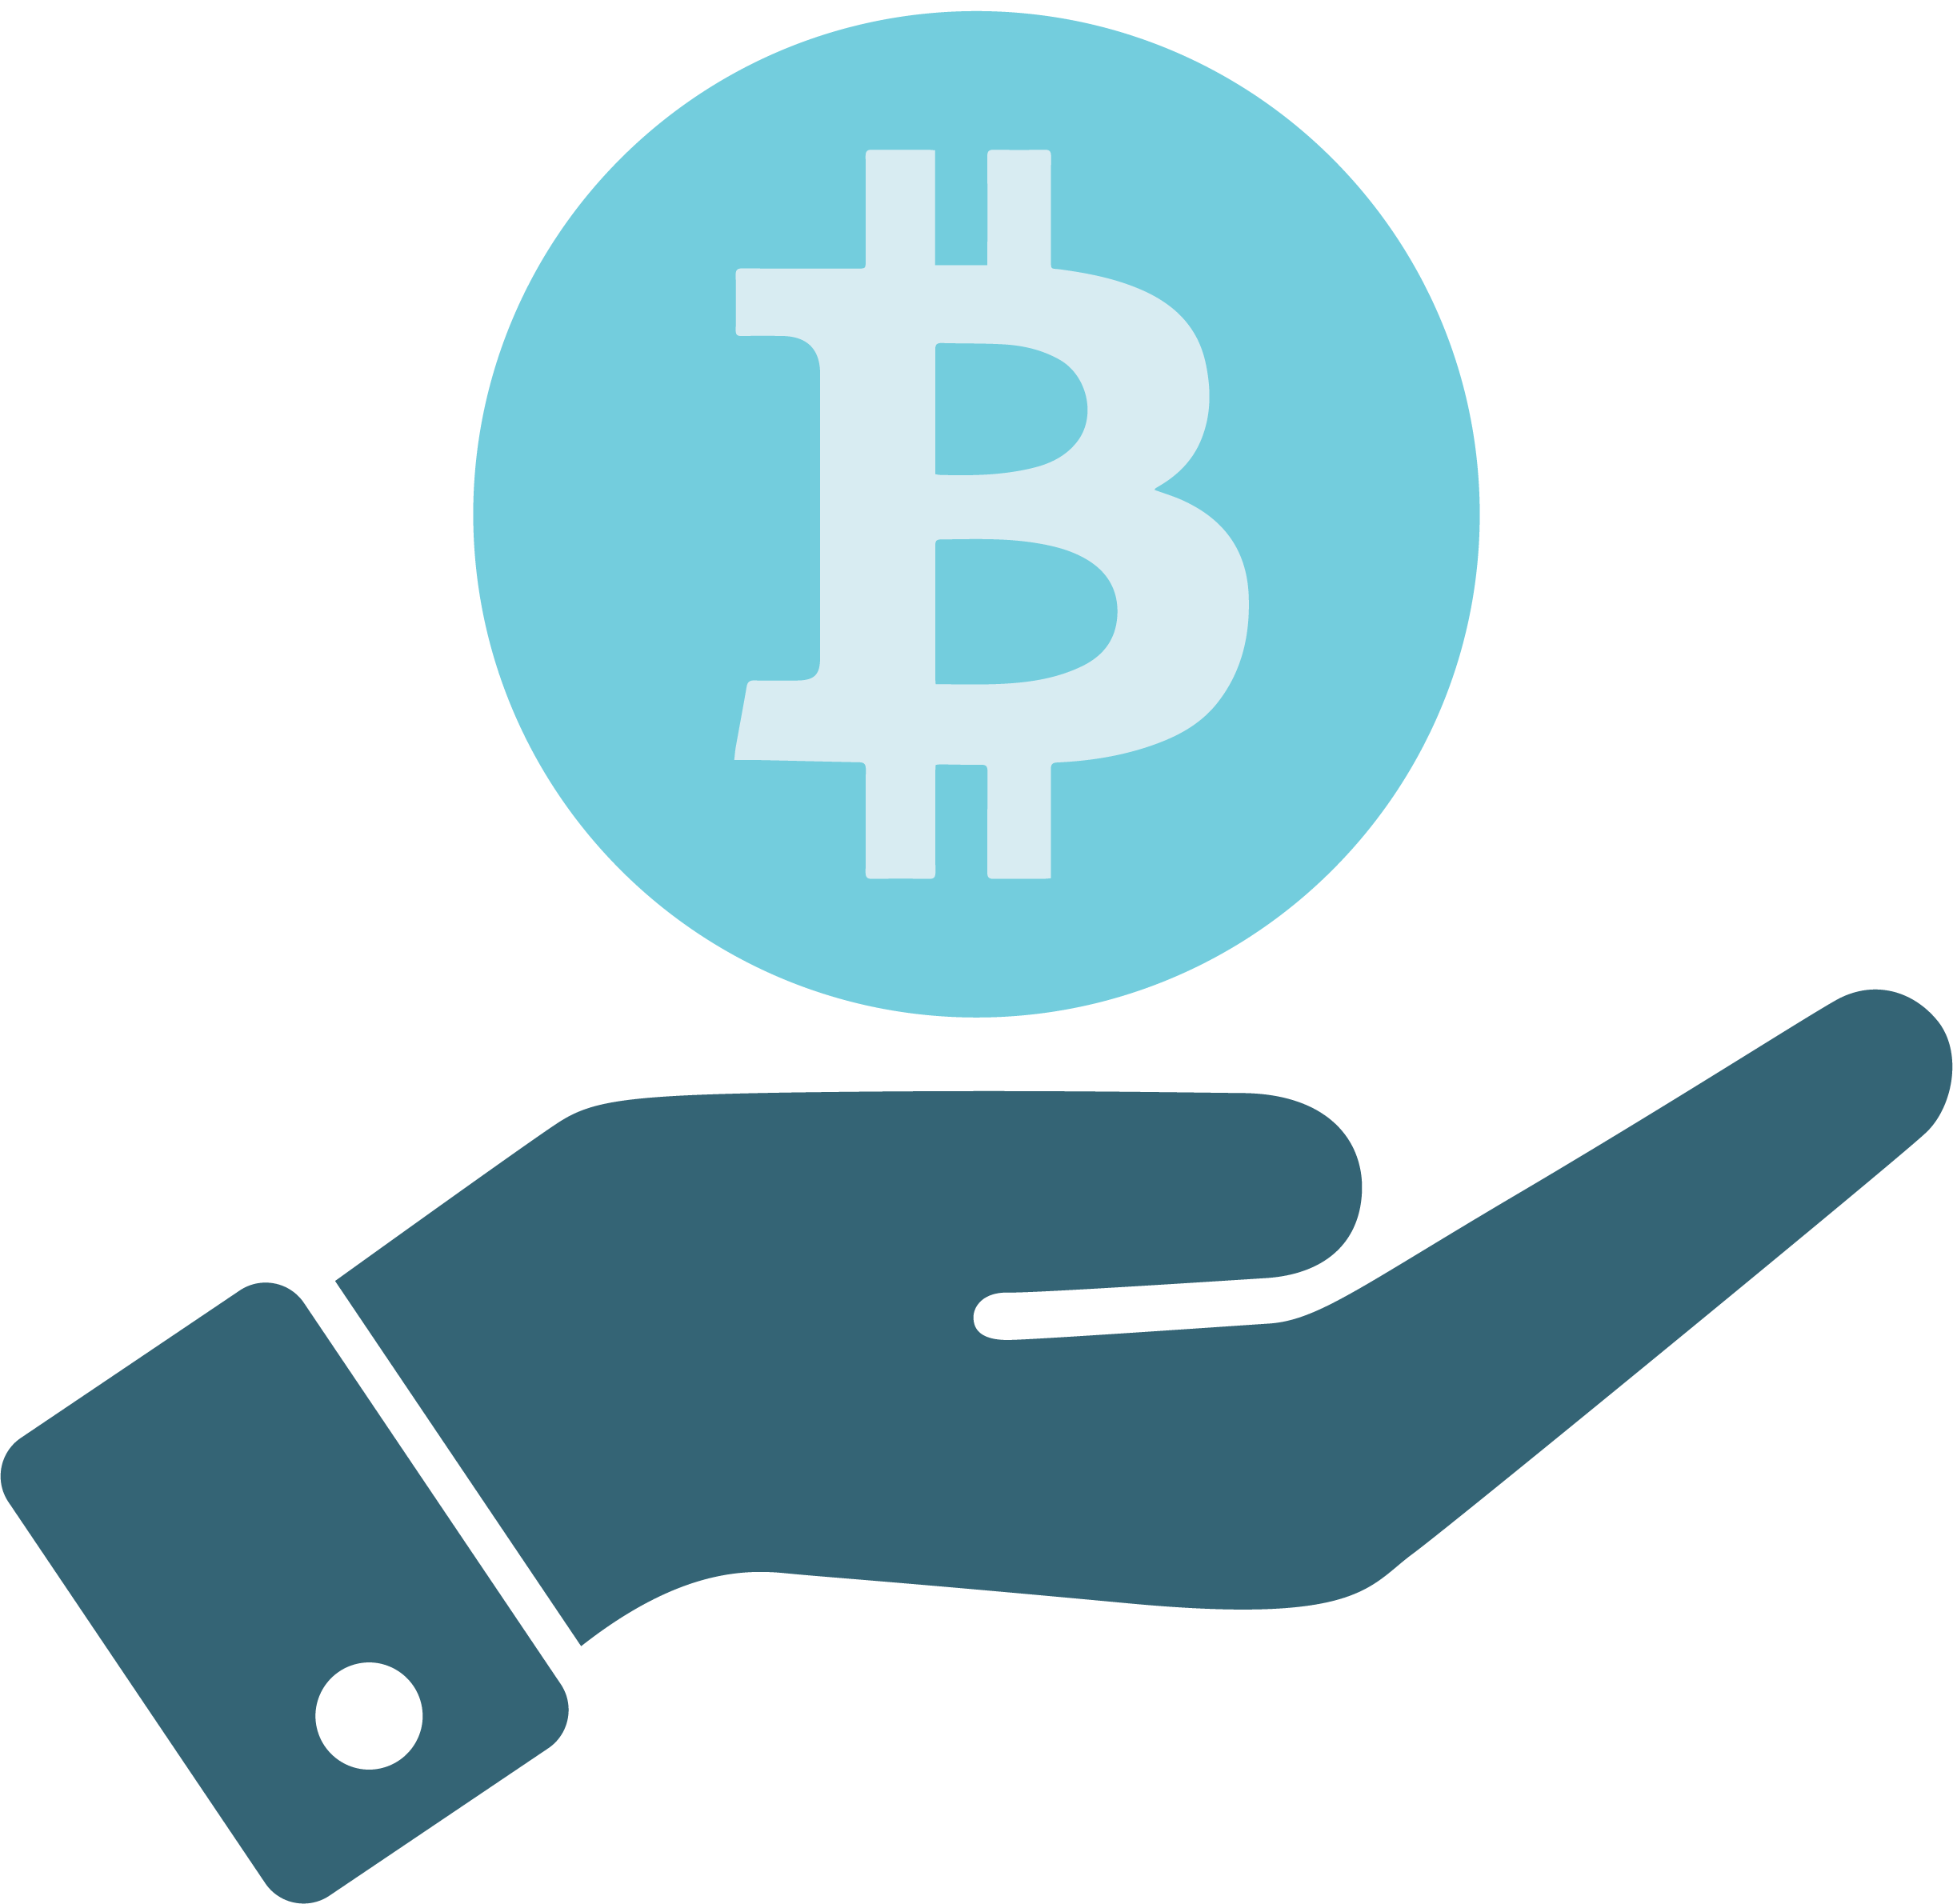 Receive 10€ in Bitcoin